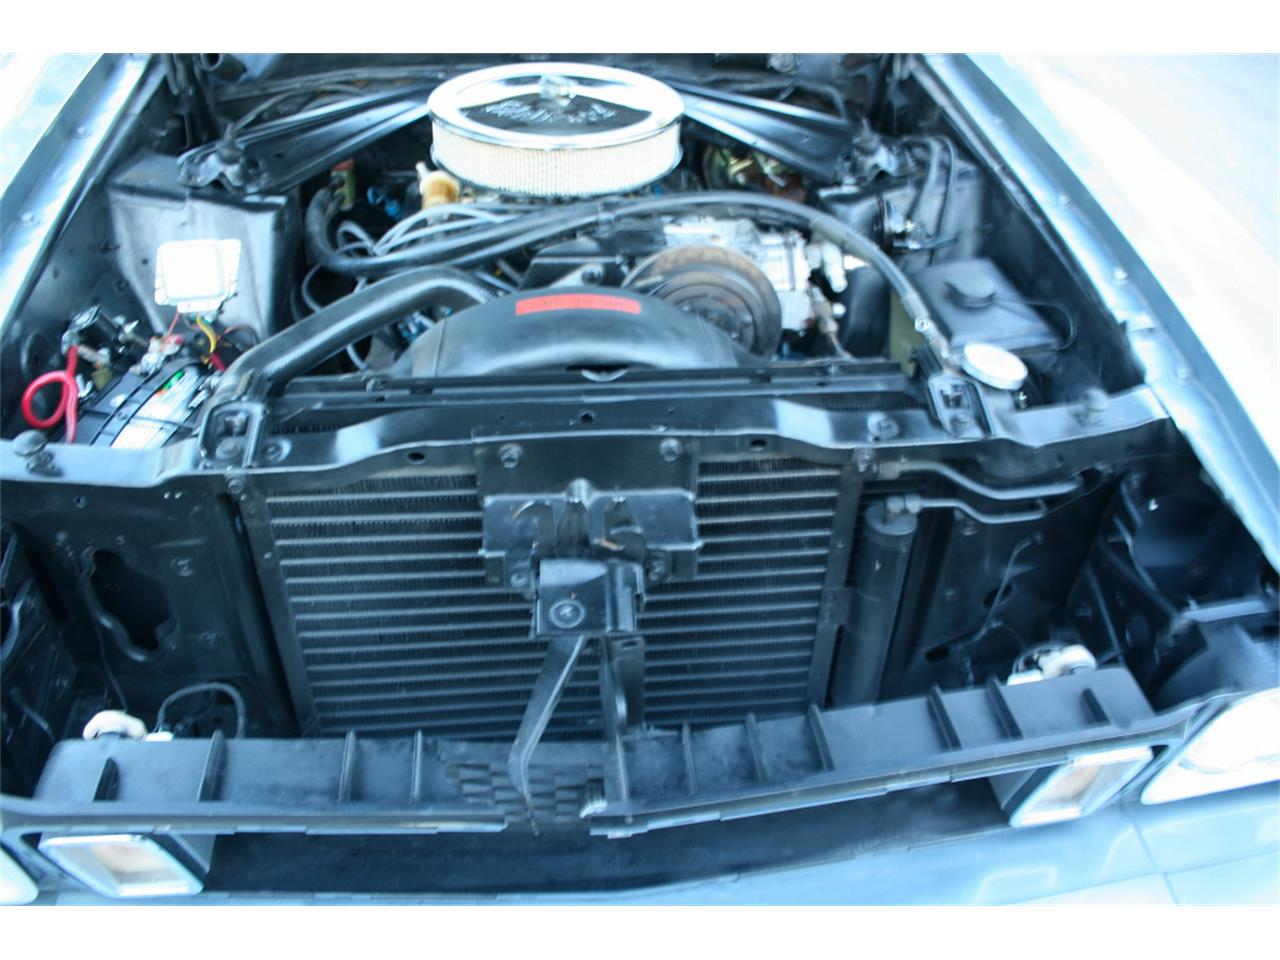 Large Picture of '73 Ford Mustang located in Lakeland Florida - $17,500.00 - MA11